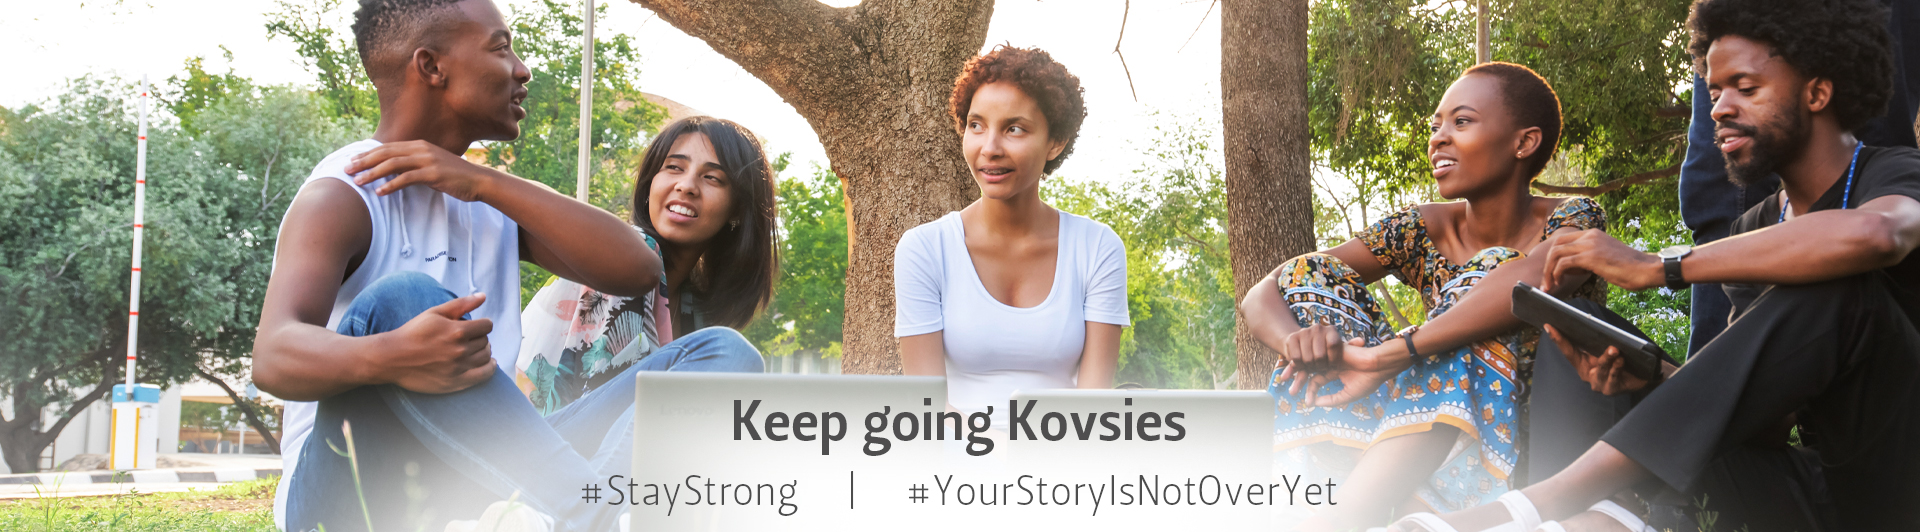 Keep Going Kovsies